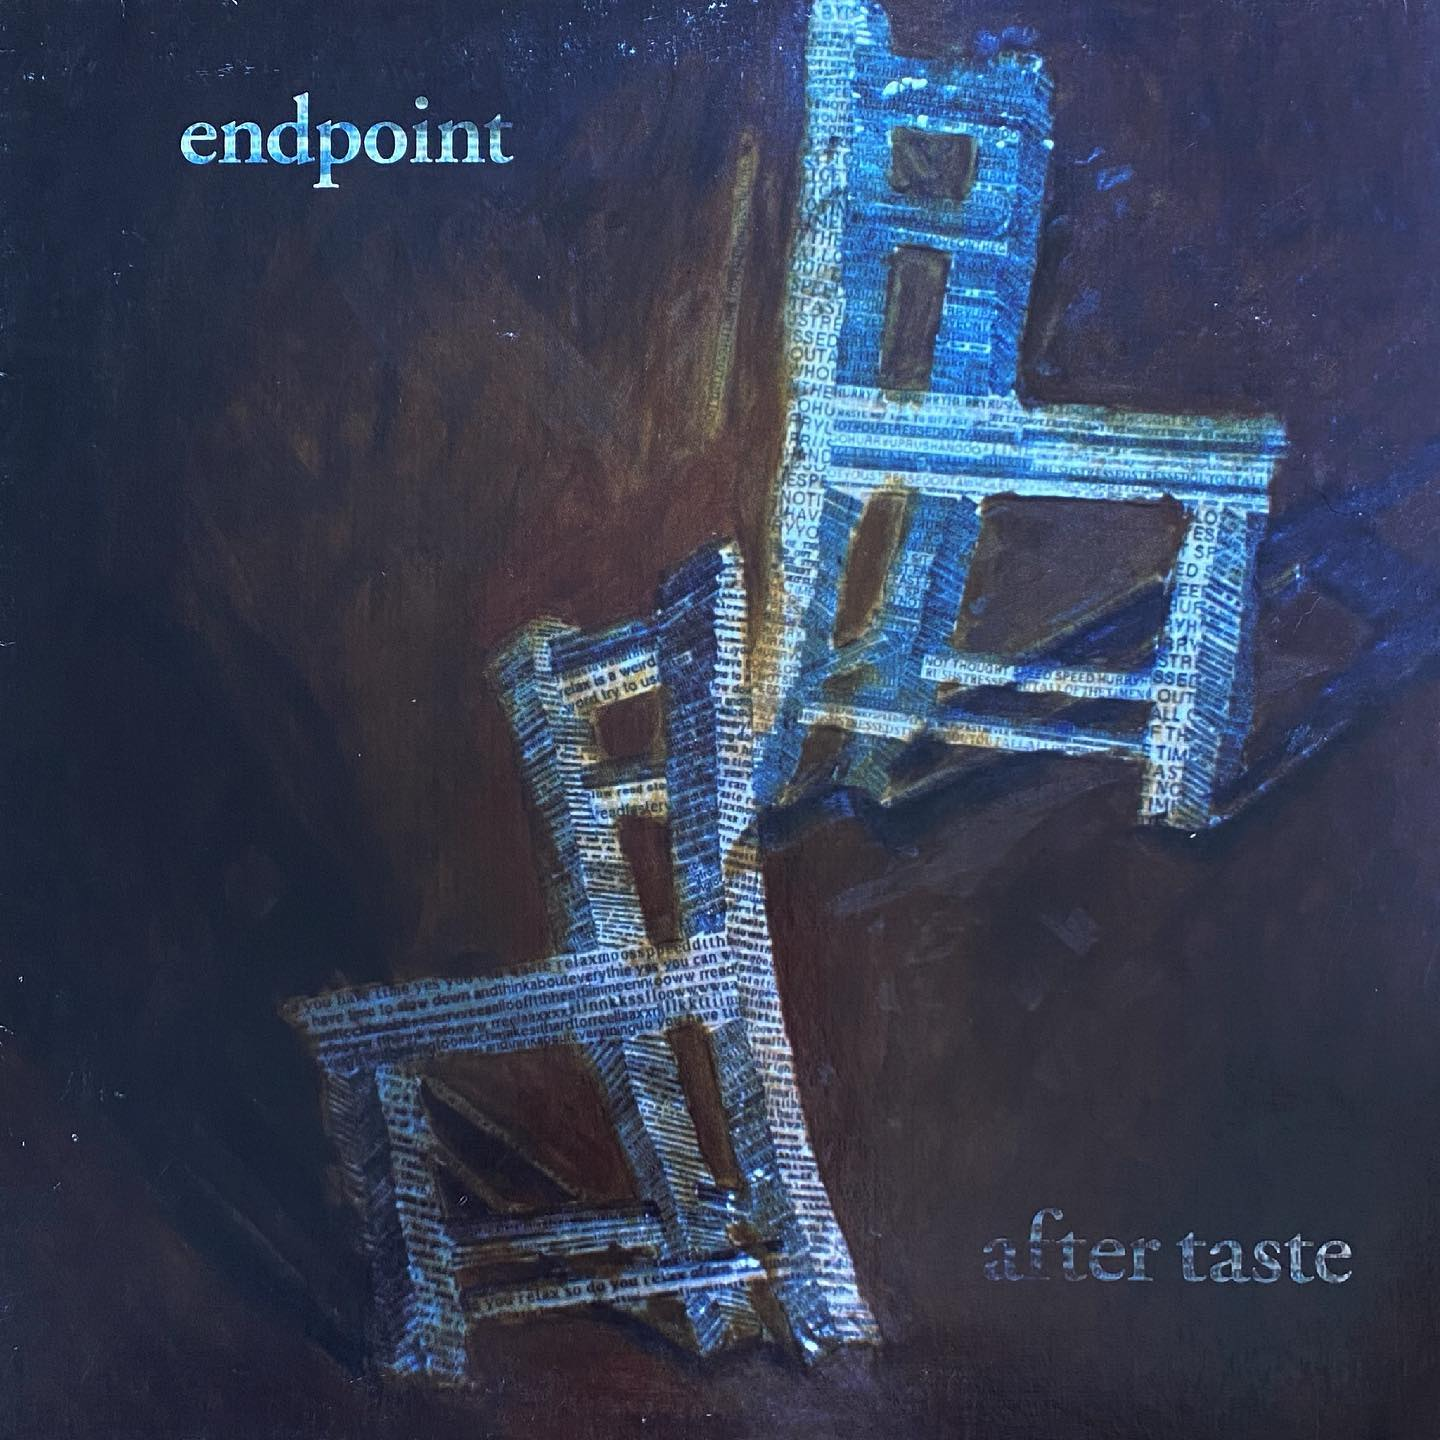 """Endpoint - After Taste #vinylforbreakfast #nowspinning """"We all burn brightest when it's love that fuels the flame"""""""